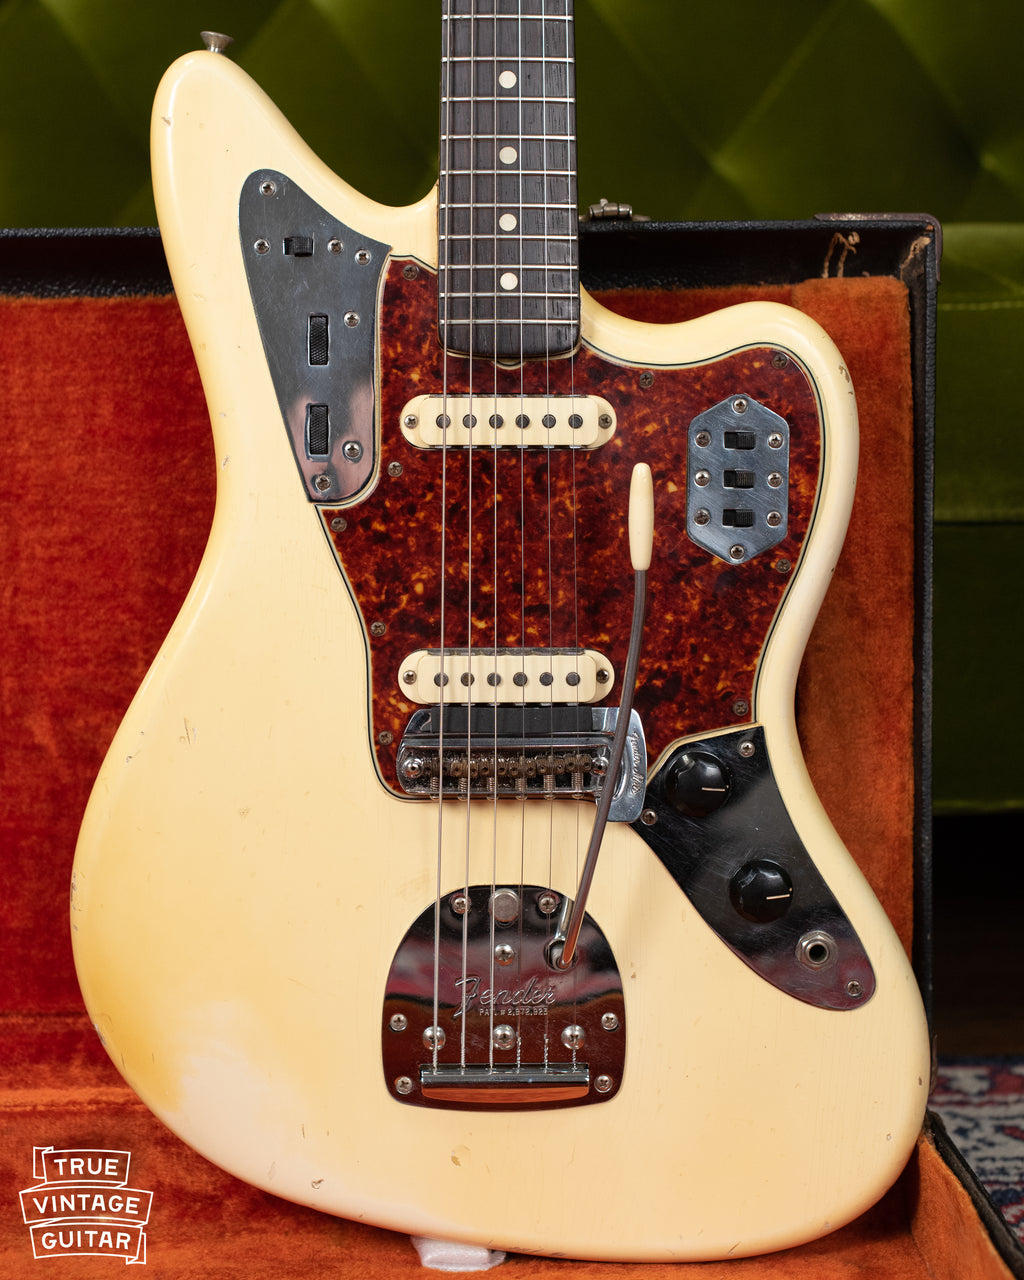 1965 Fender Jaguar Olympic White vintage guitar